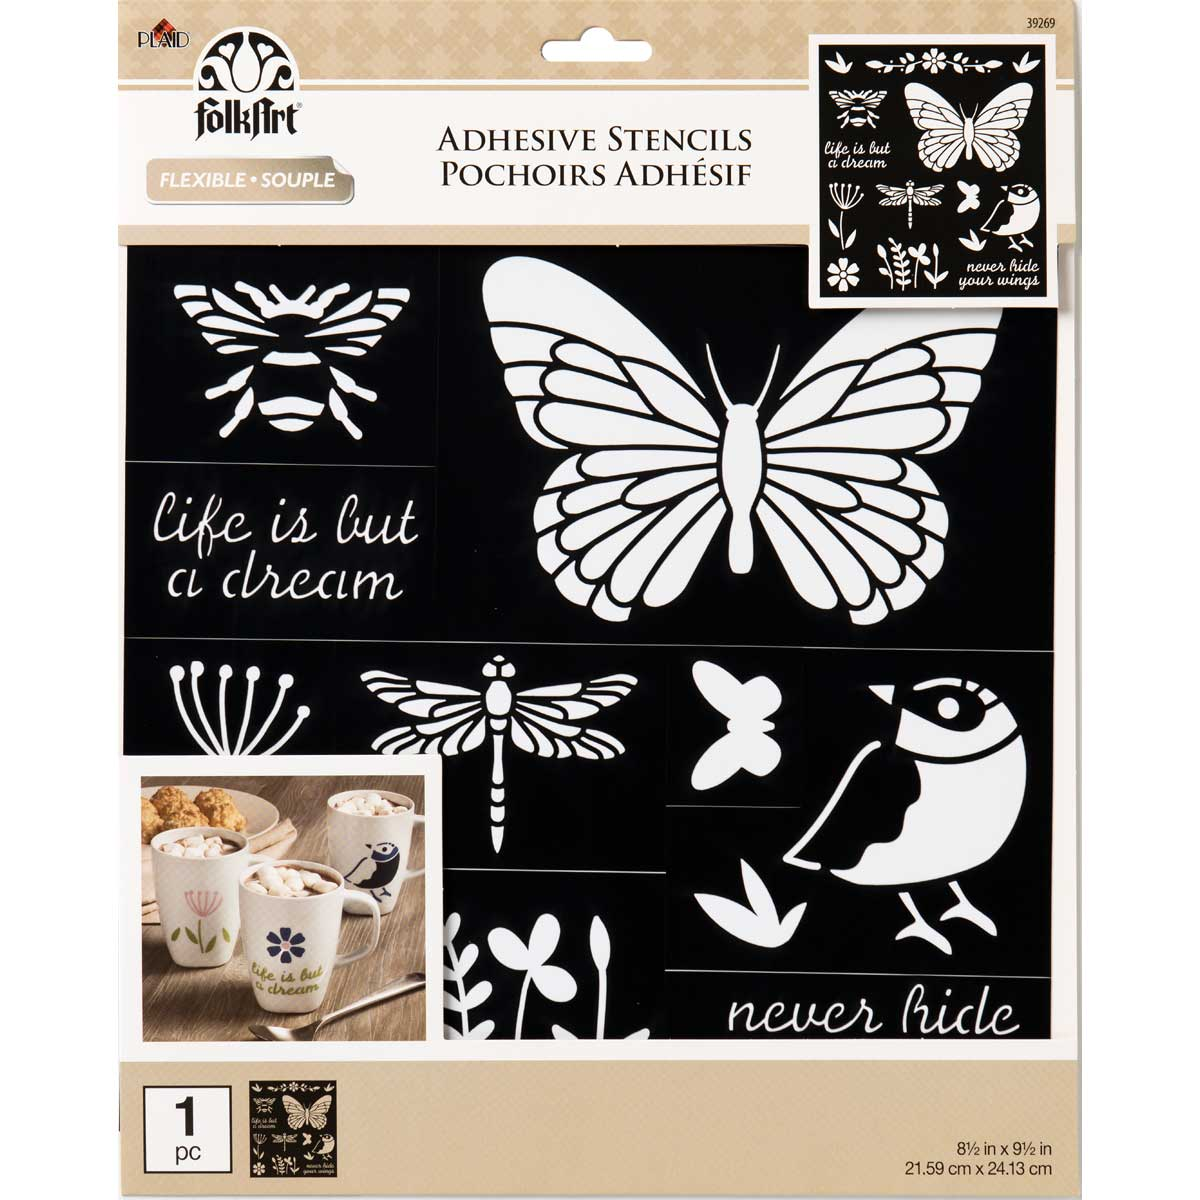 FolkArt ® Laser Cut Adhesive Stencils - Birds, Bees & More - 39269